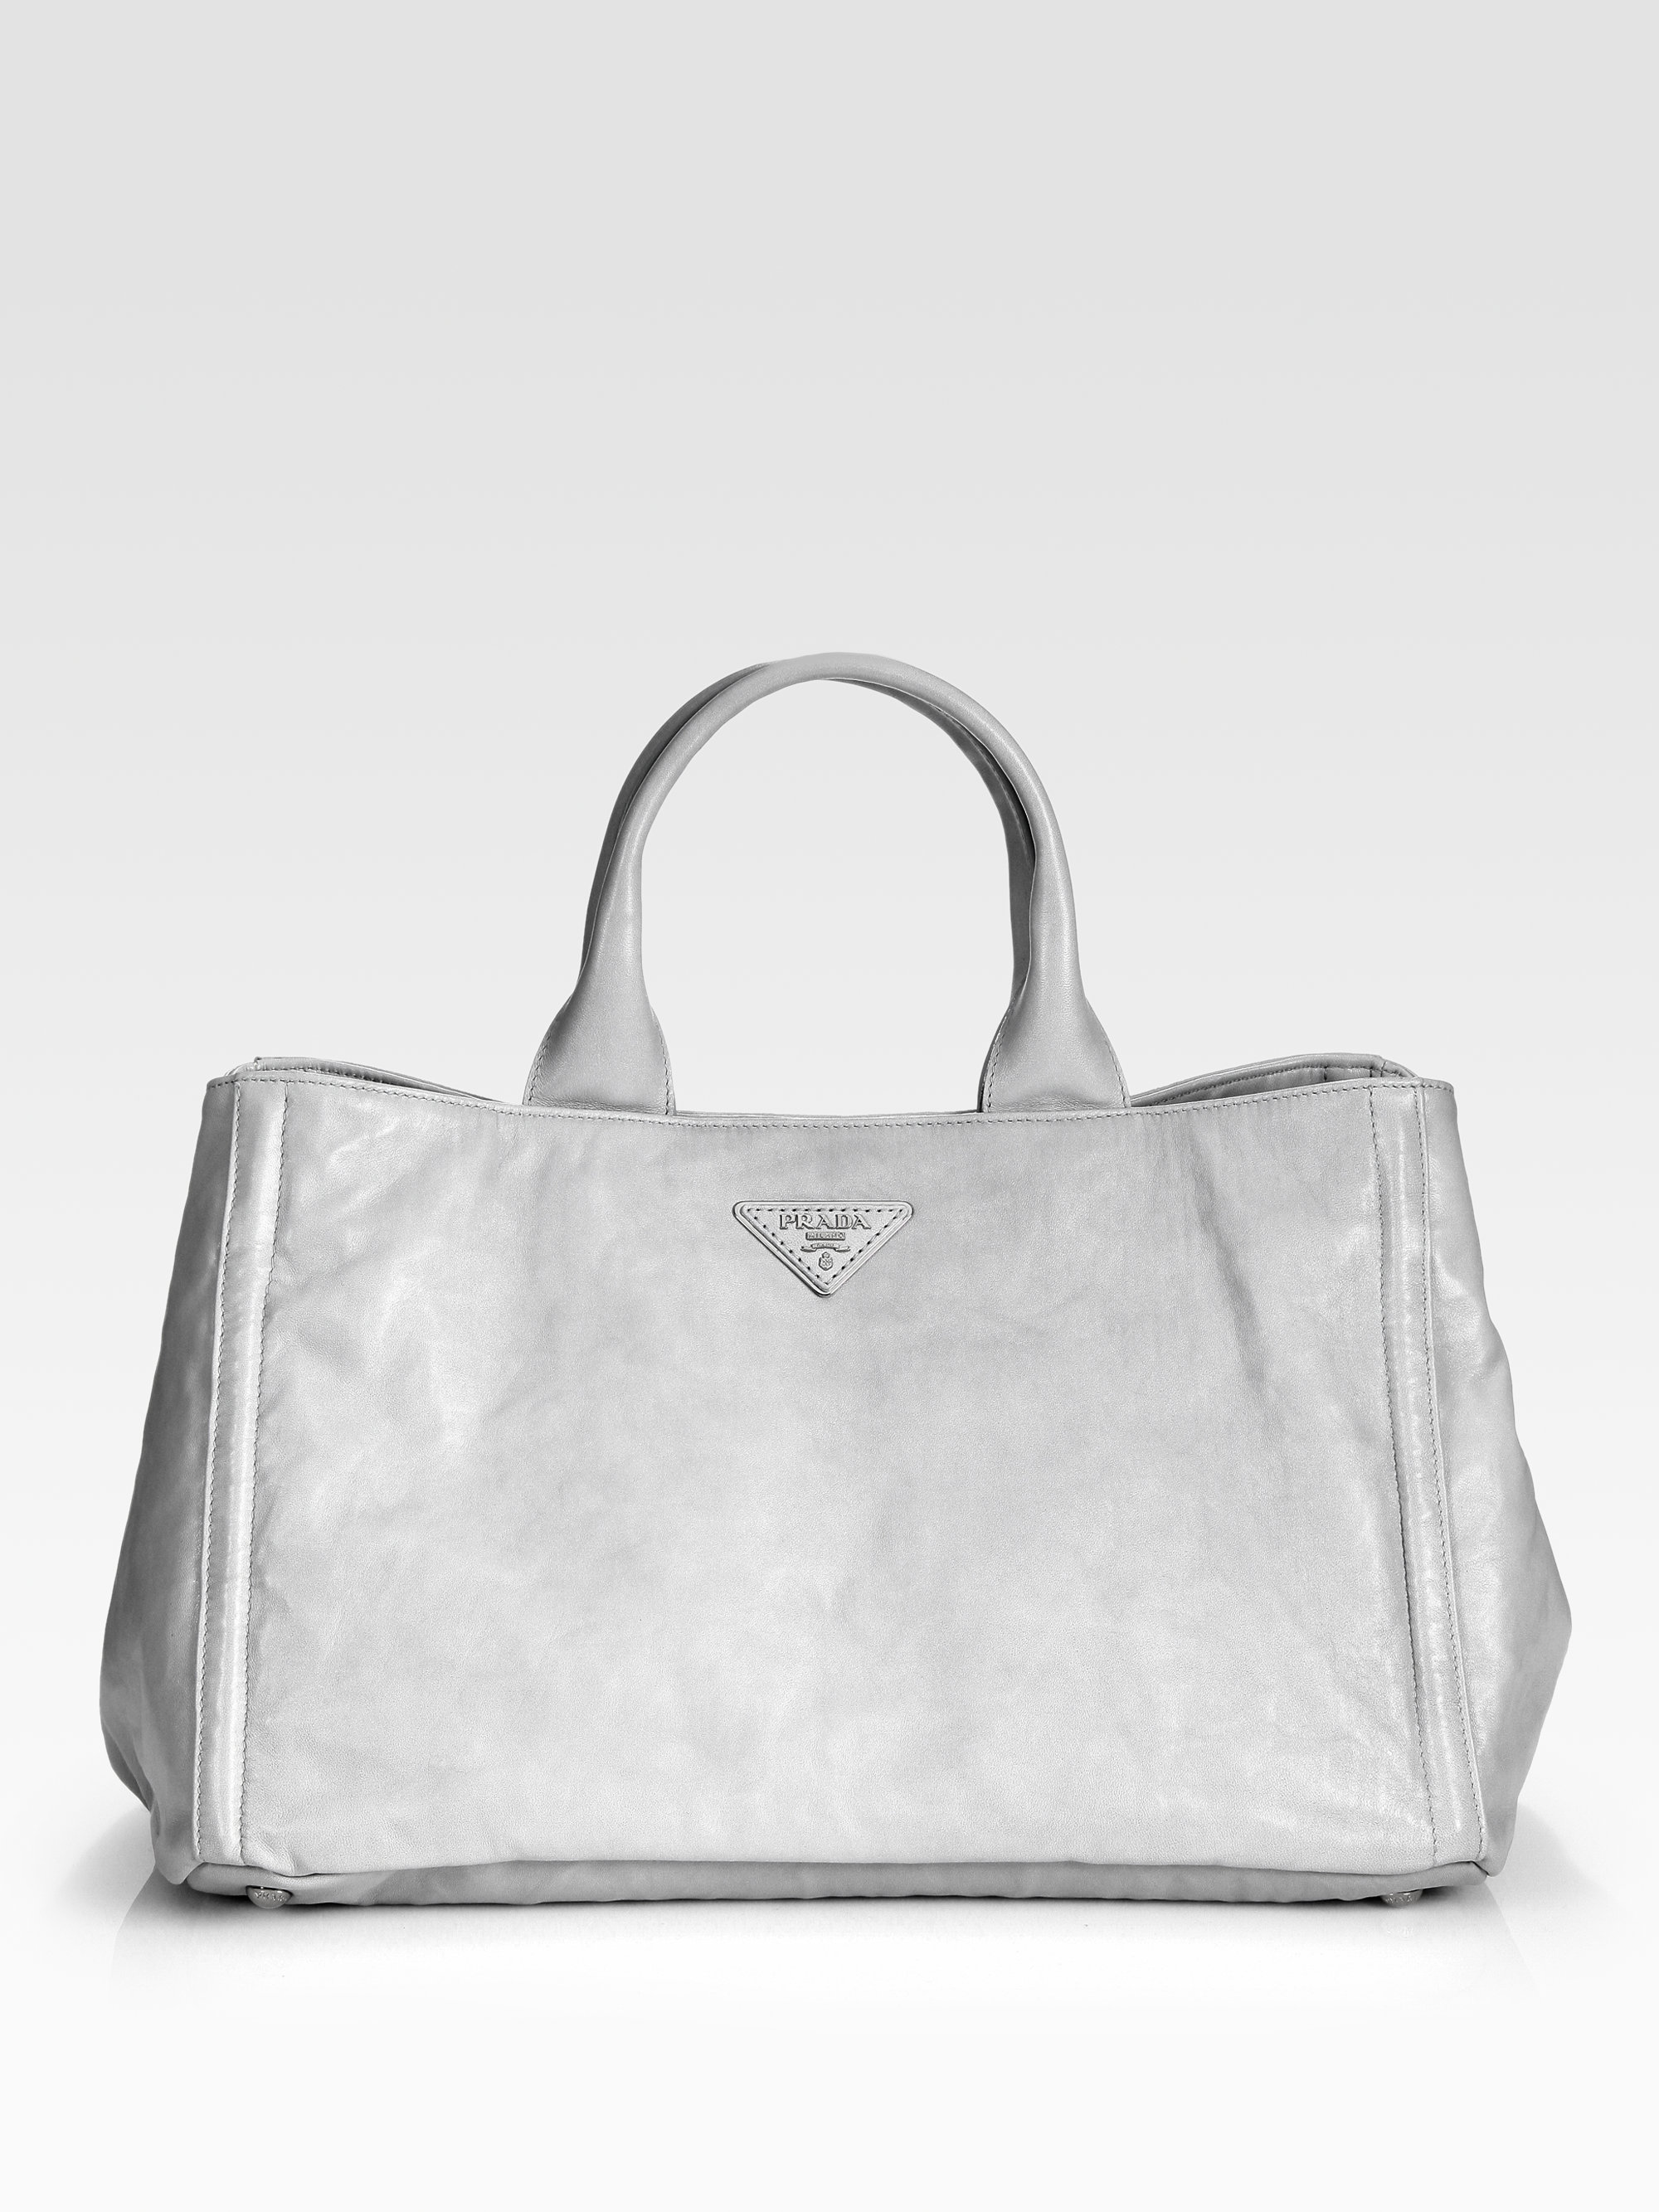 popular leather purses - prada nappa tote, prada ostrich purse